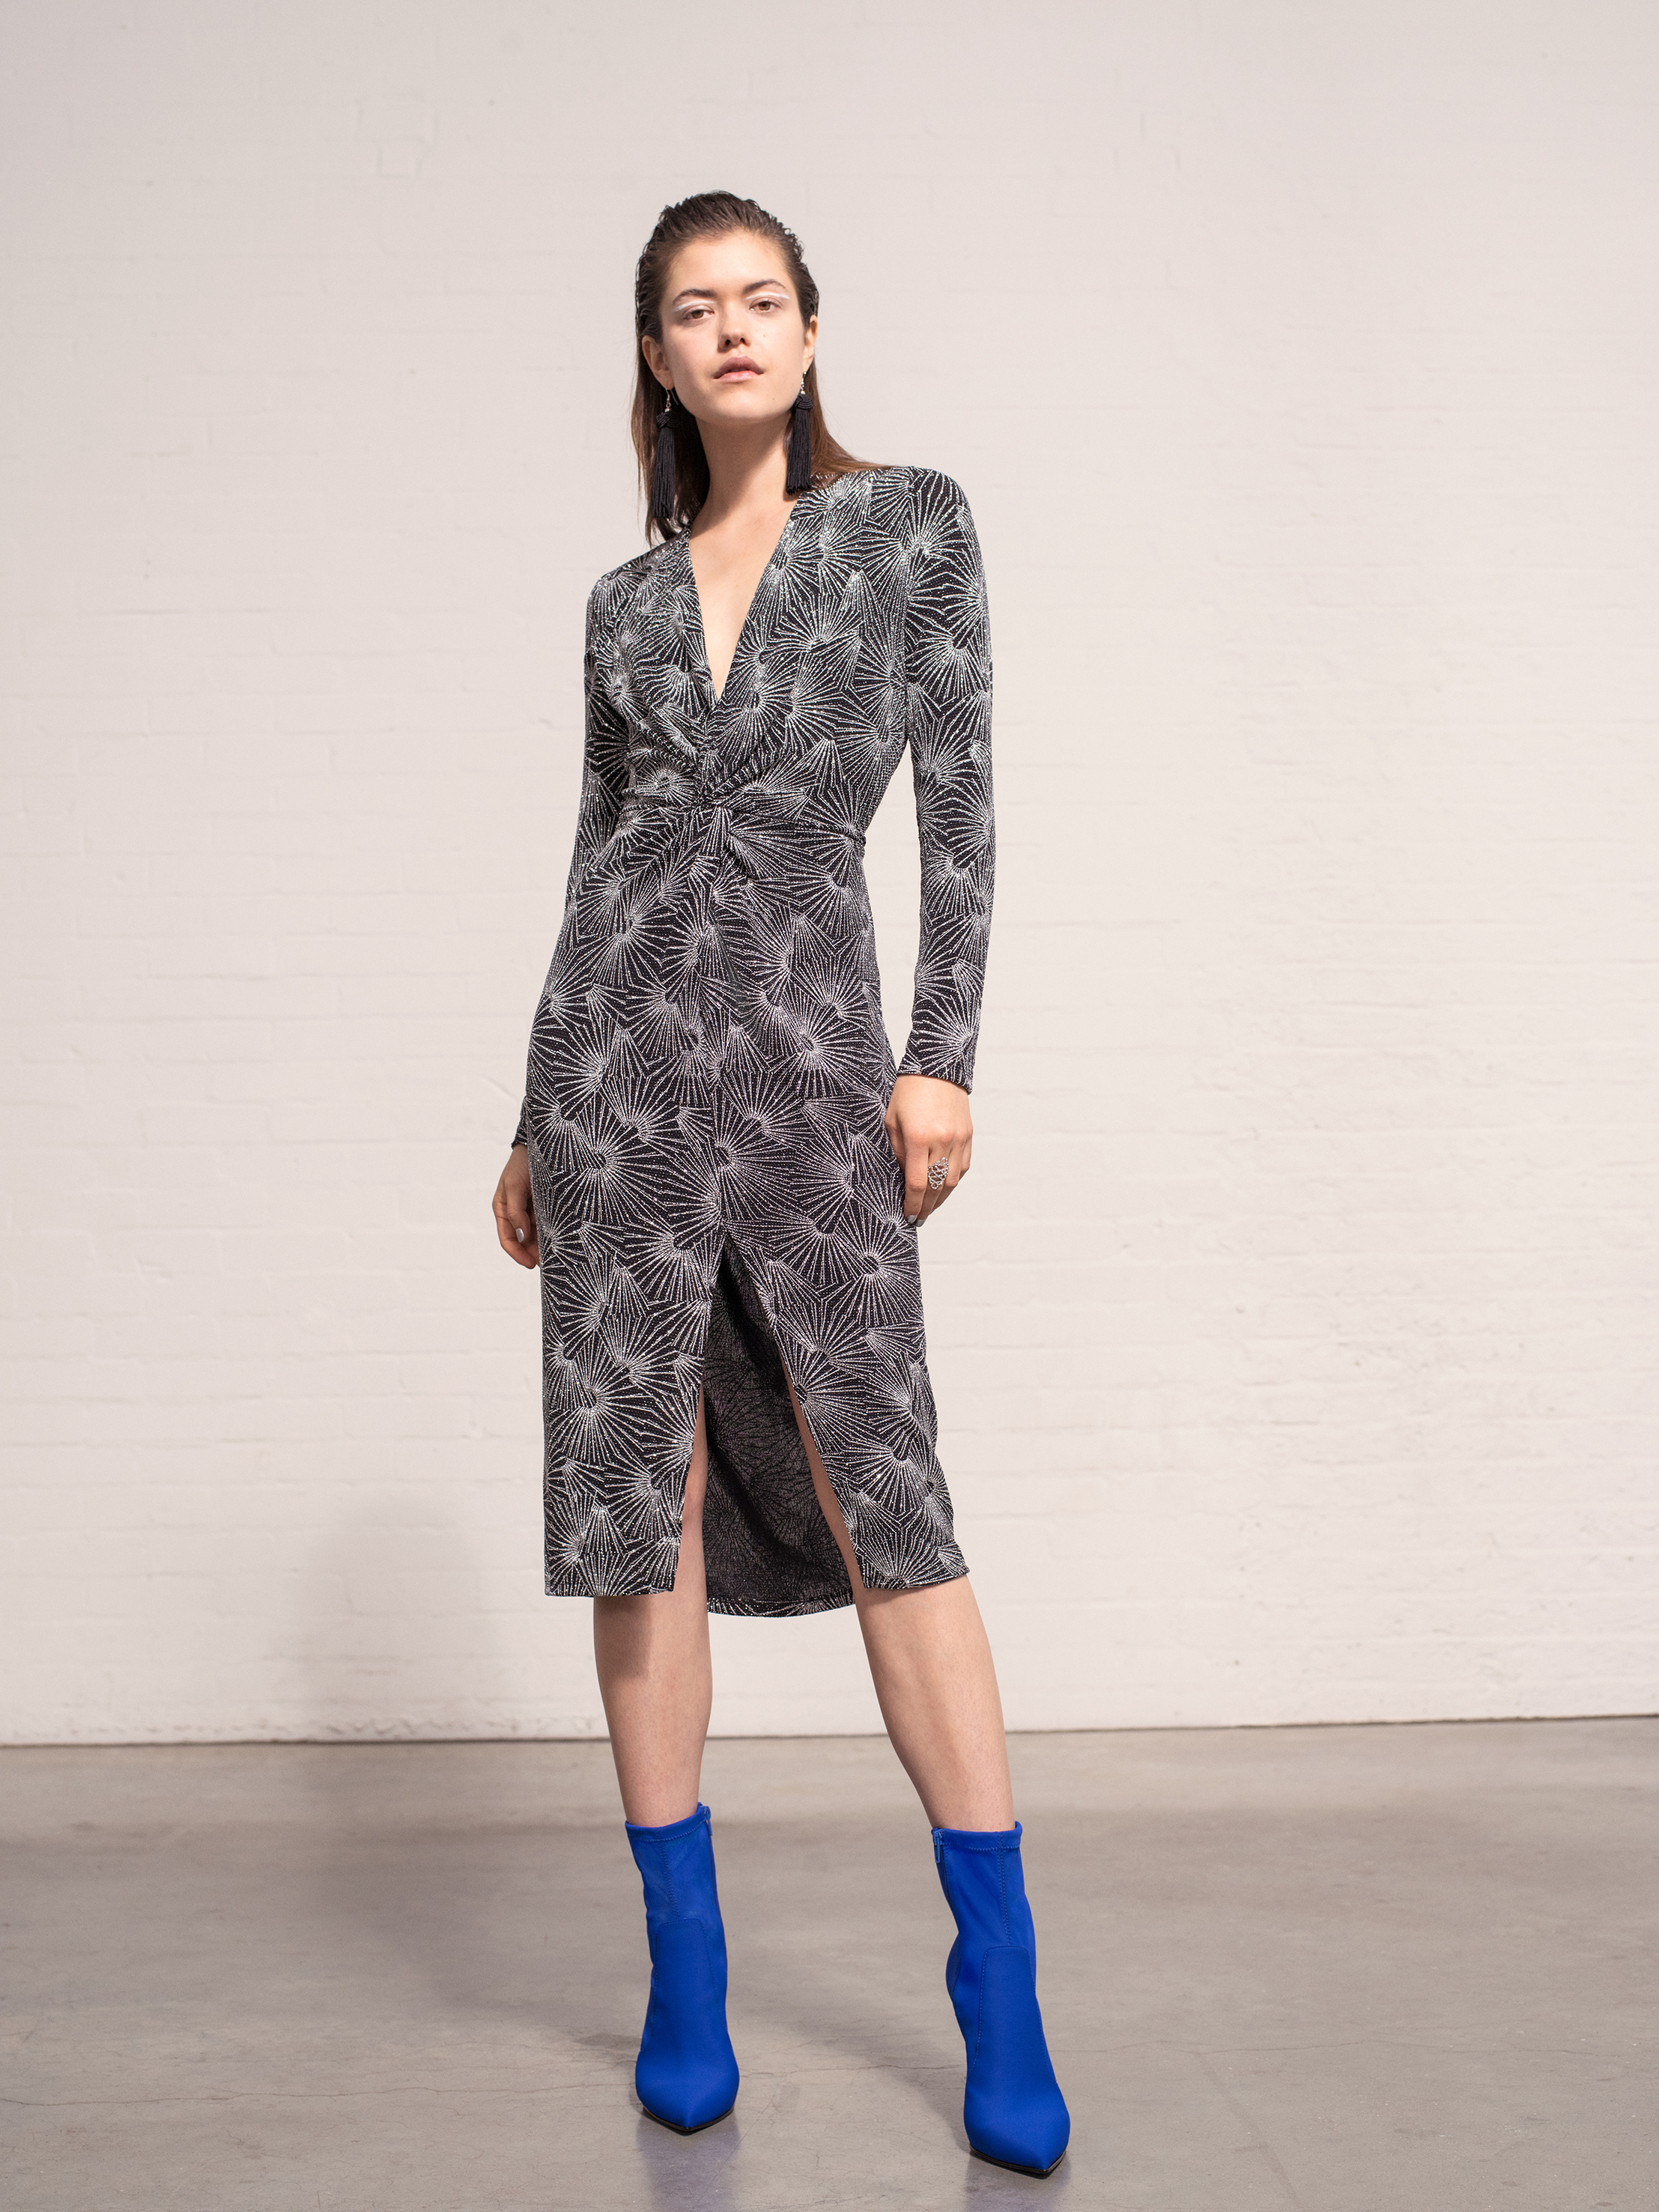 Miss Selfridge Silver Long Sleeve Twisted Pencil Dress, £39; Dayla Stretch Sock Boots, £42